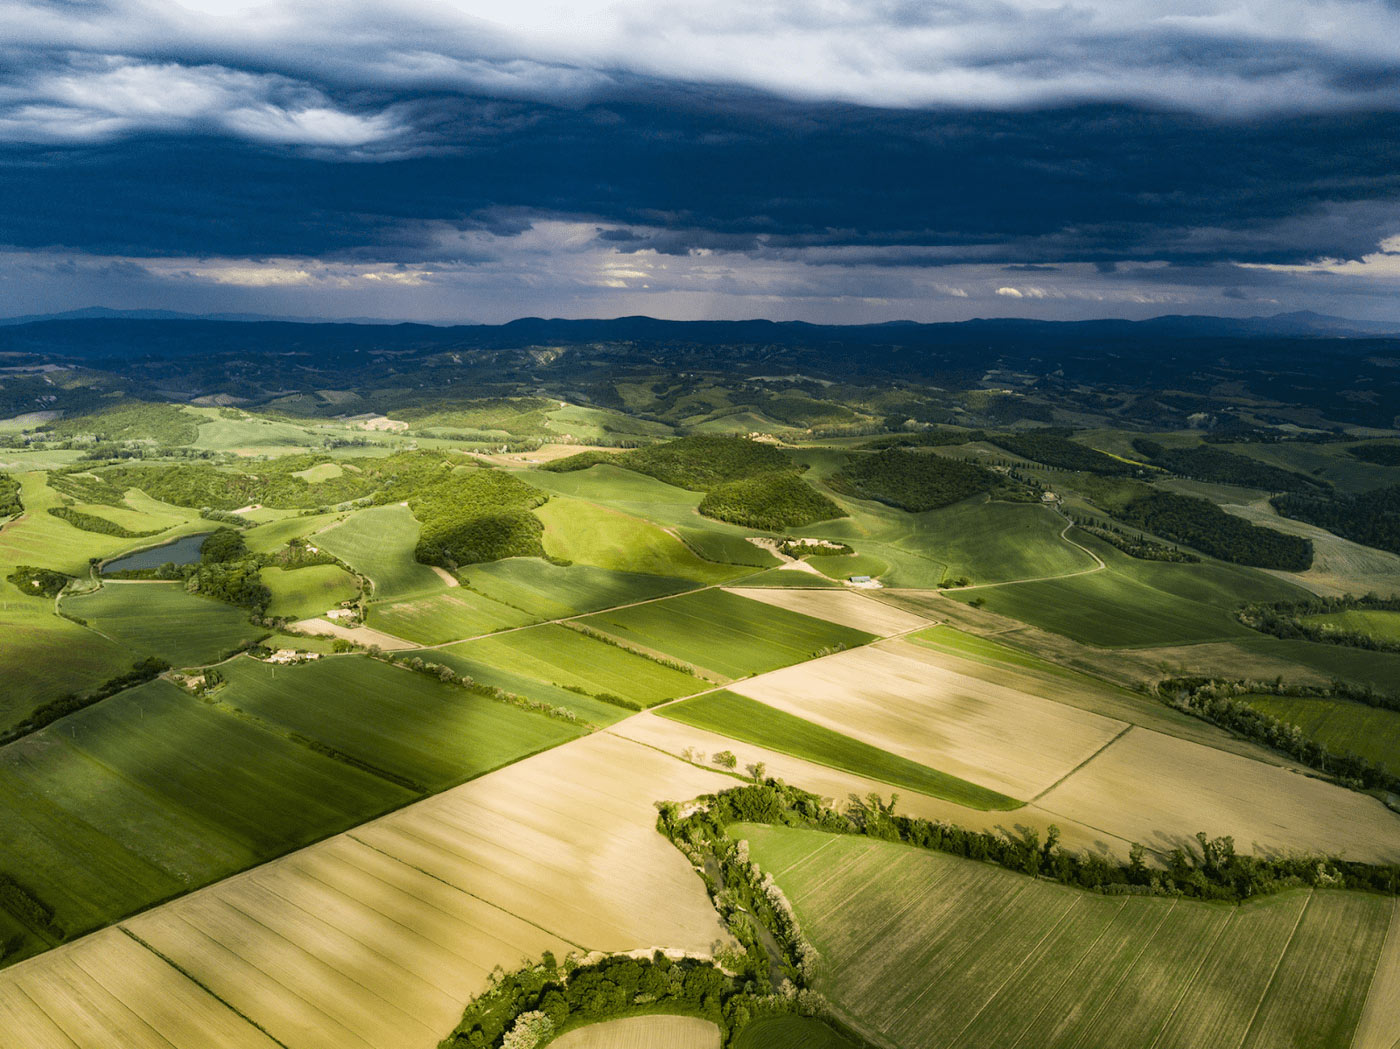 Green wide perspective from above with a cloudy dark blue sky